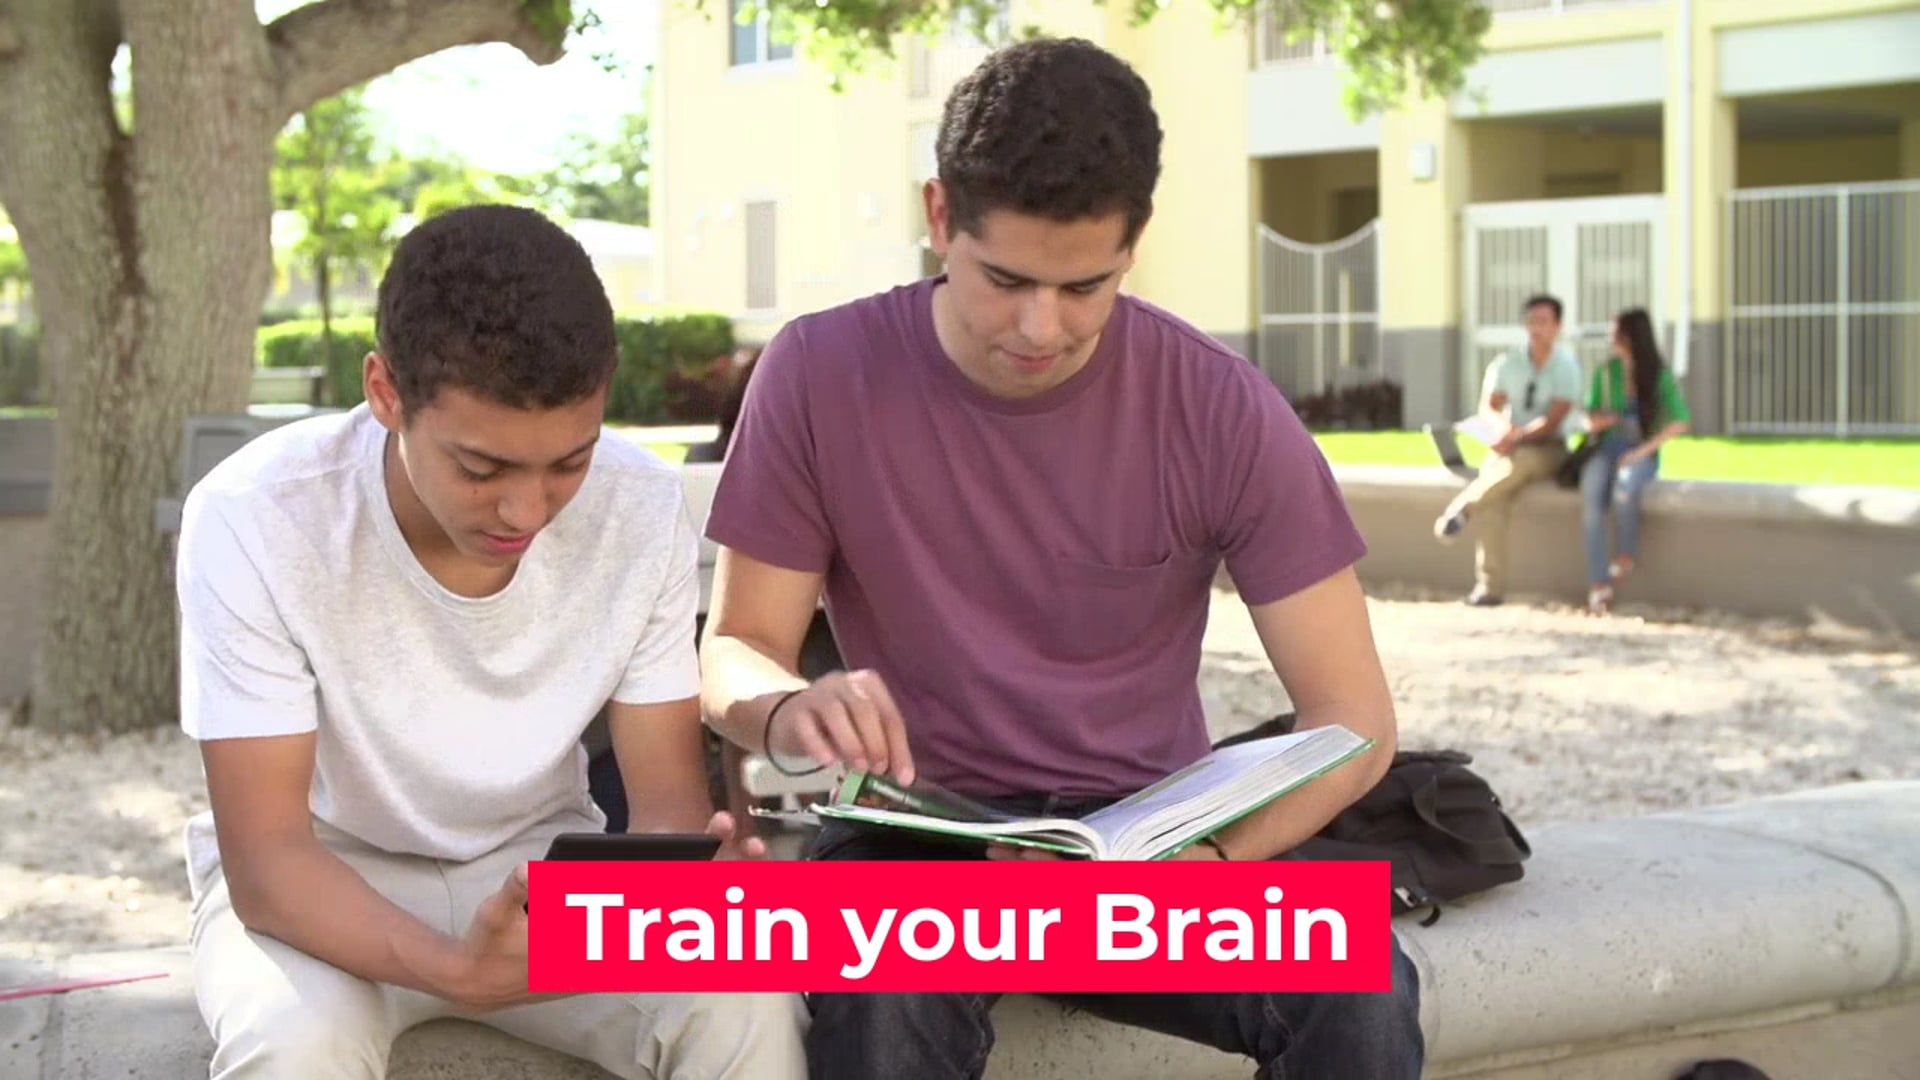 Sport of Thinking: Train Your Brain